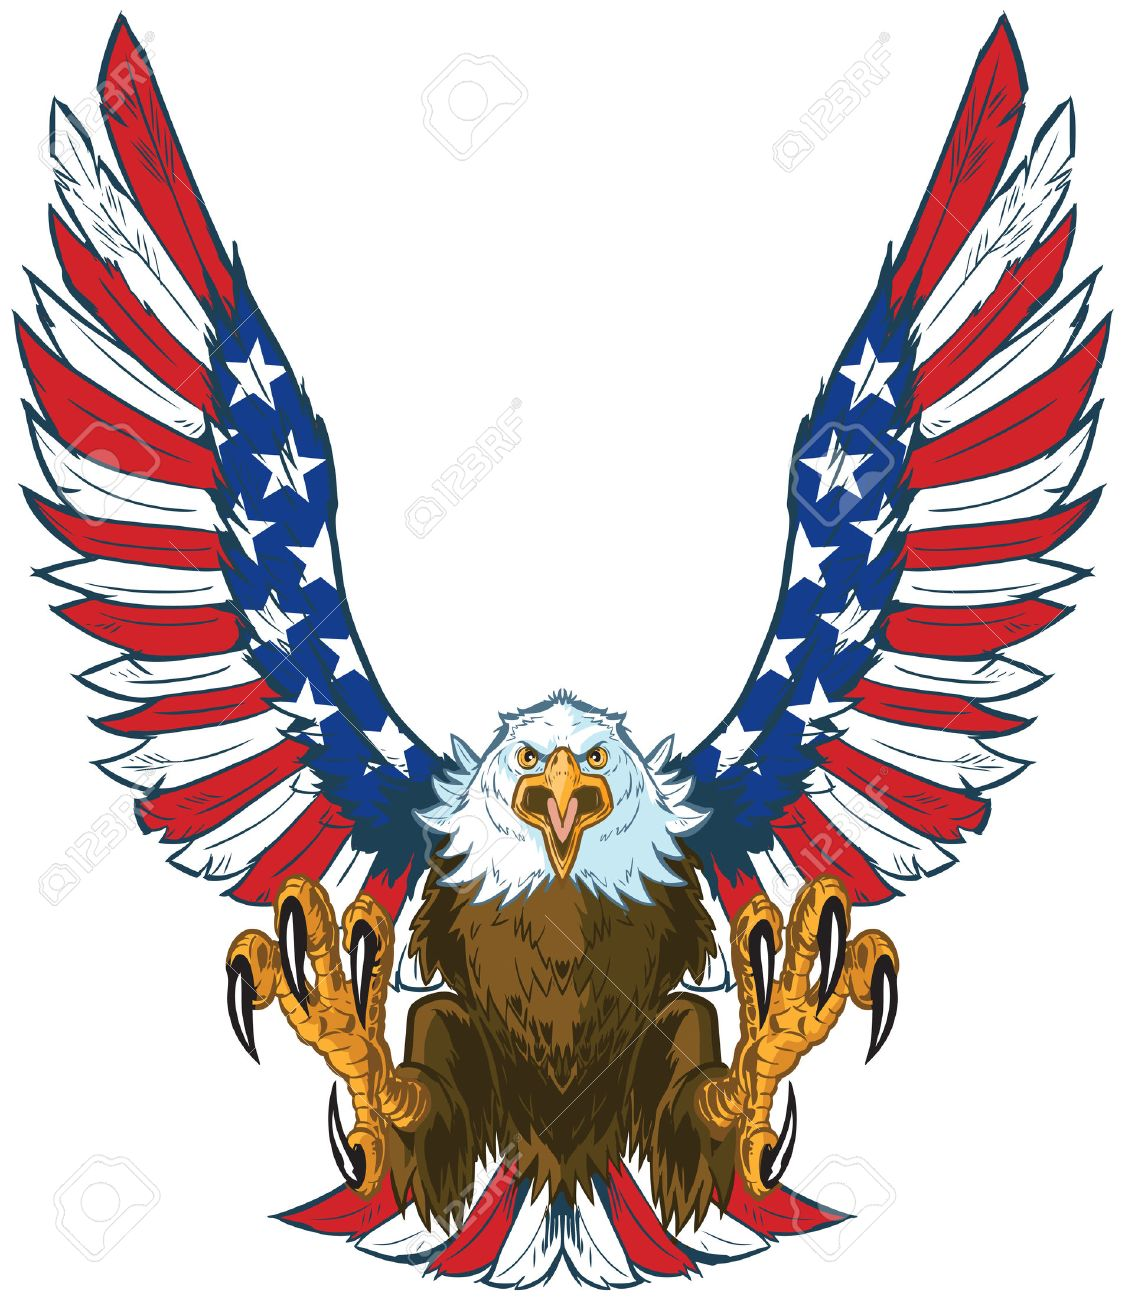 4 692 bald eagle stock vector illustration and royalty free bald rh 123rf com american flag eagle clipart american eagle clipart black and white